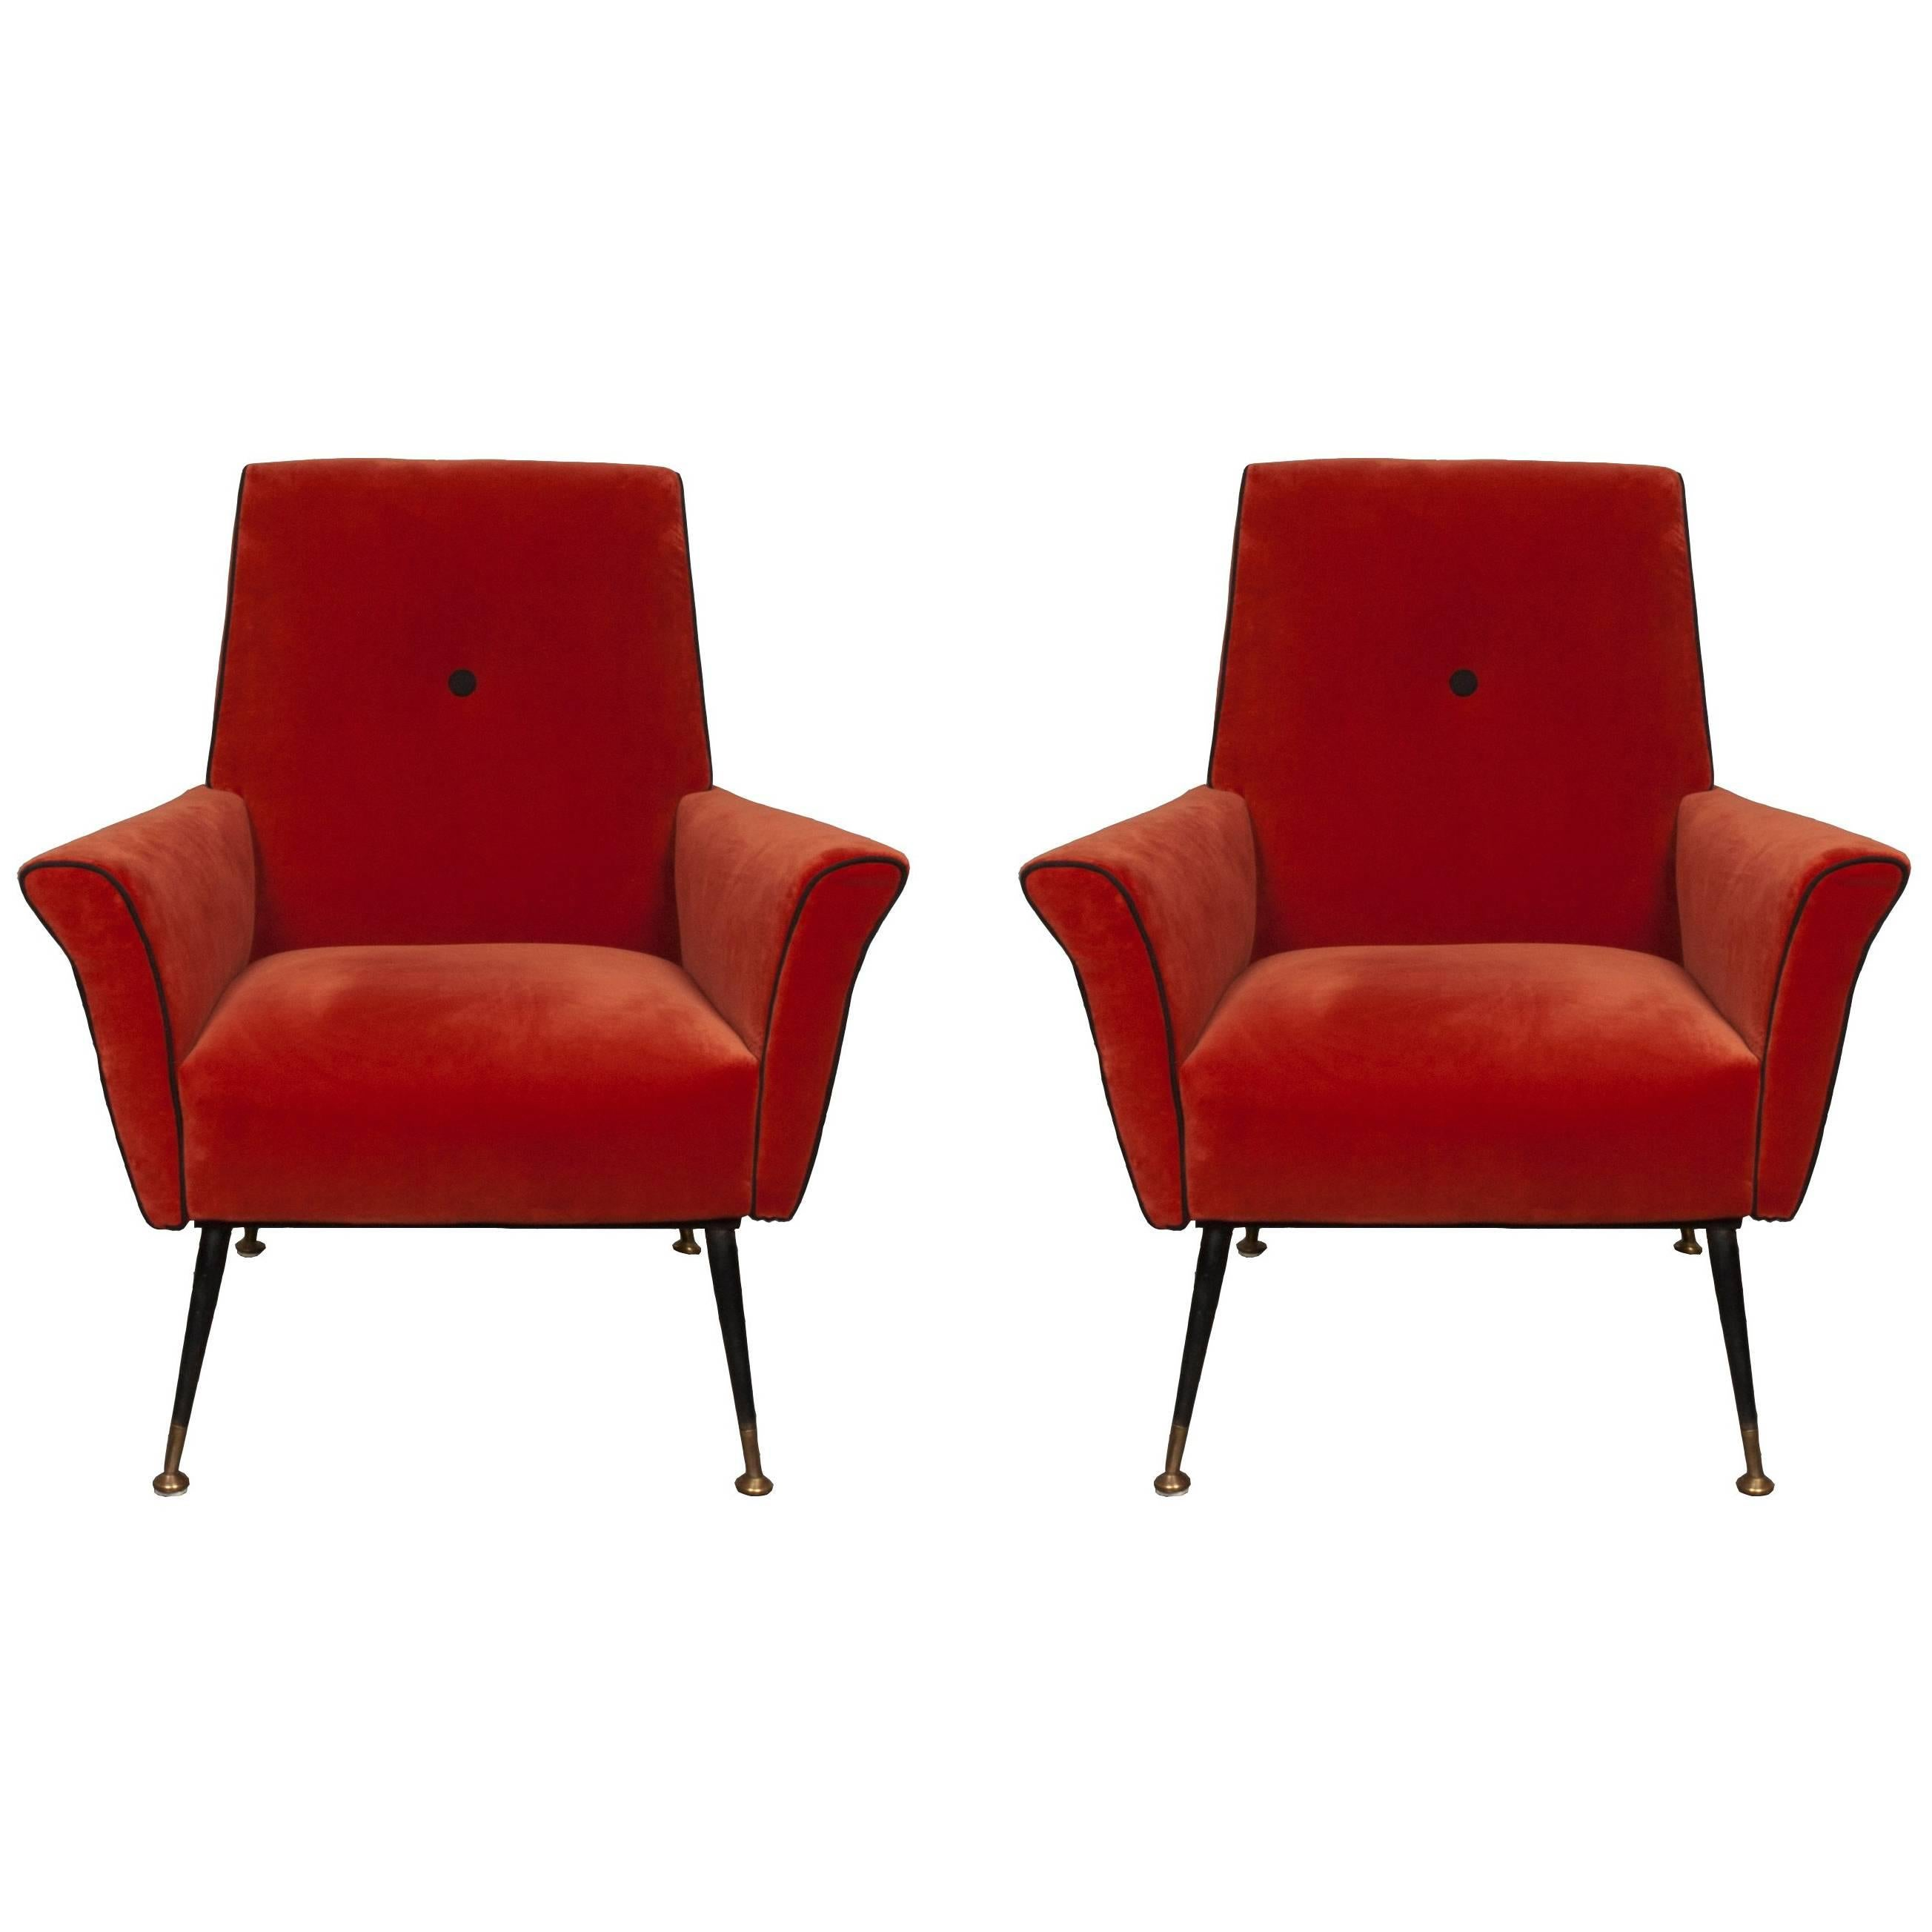 Delightful Pair Of 1940s Red Italian Armchairs For Sale